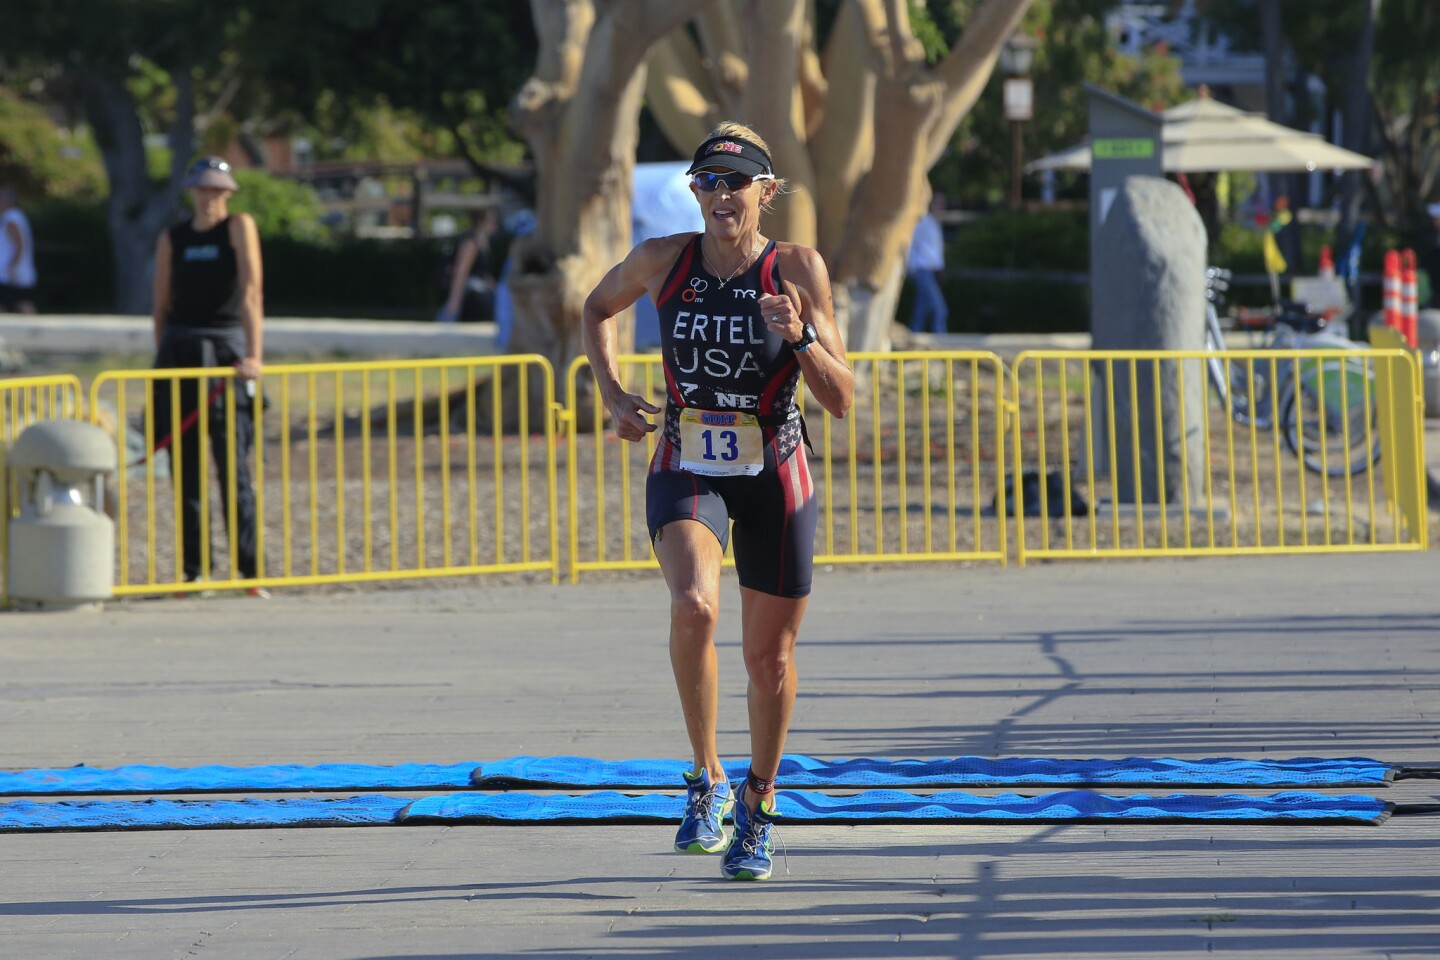 Julie Swail-Ertel comes down the final stretch towards the finish line at the Embarcadero Park to place first in the women's division at the San Diego International Triathlon on Sunday.